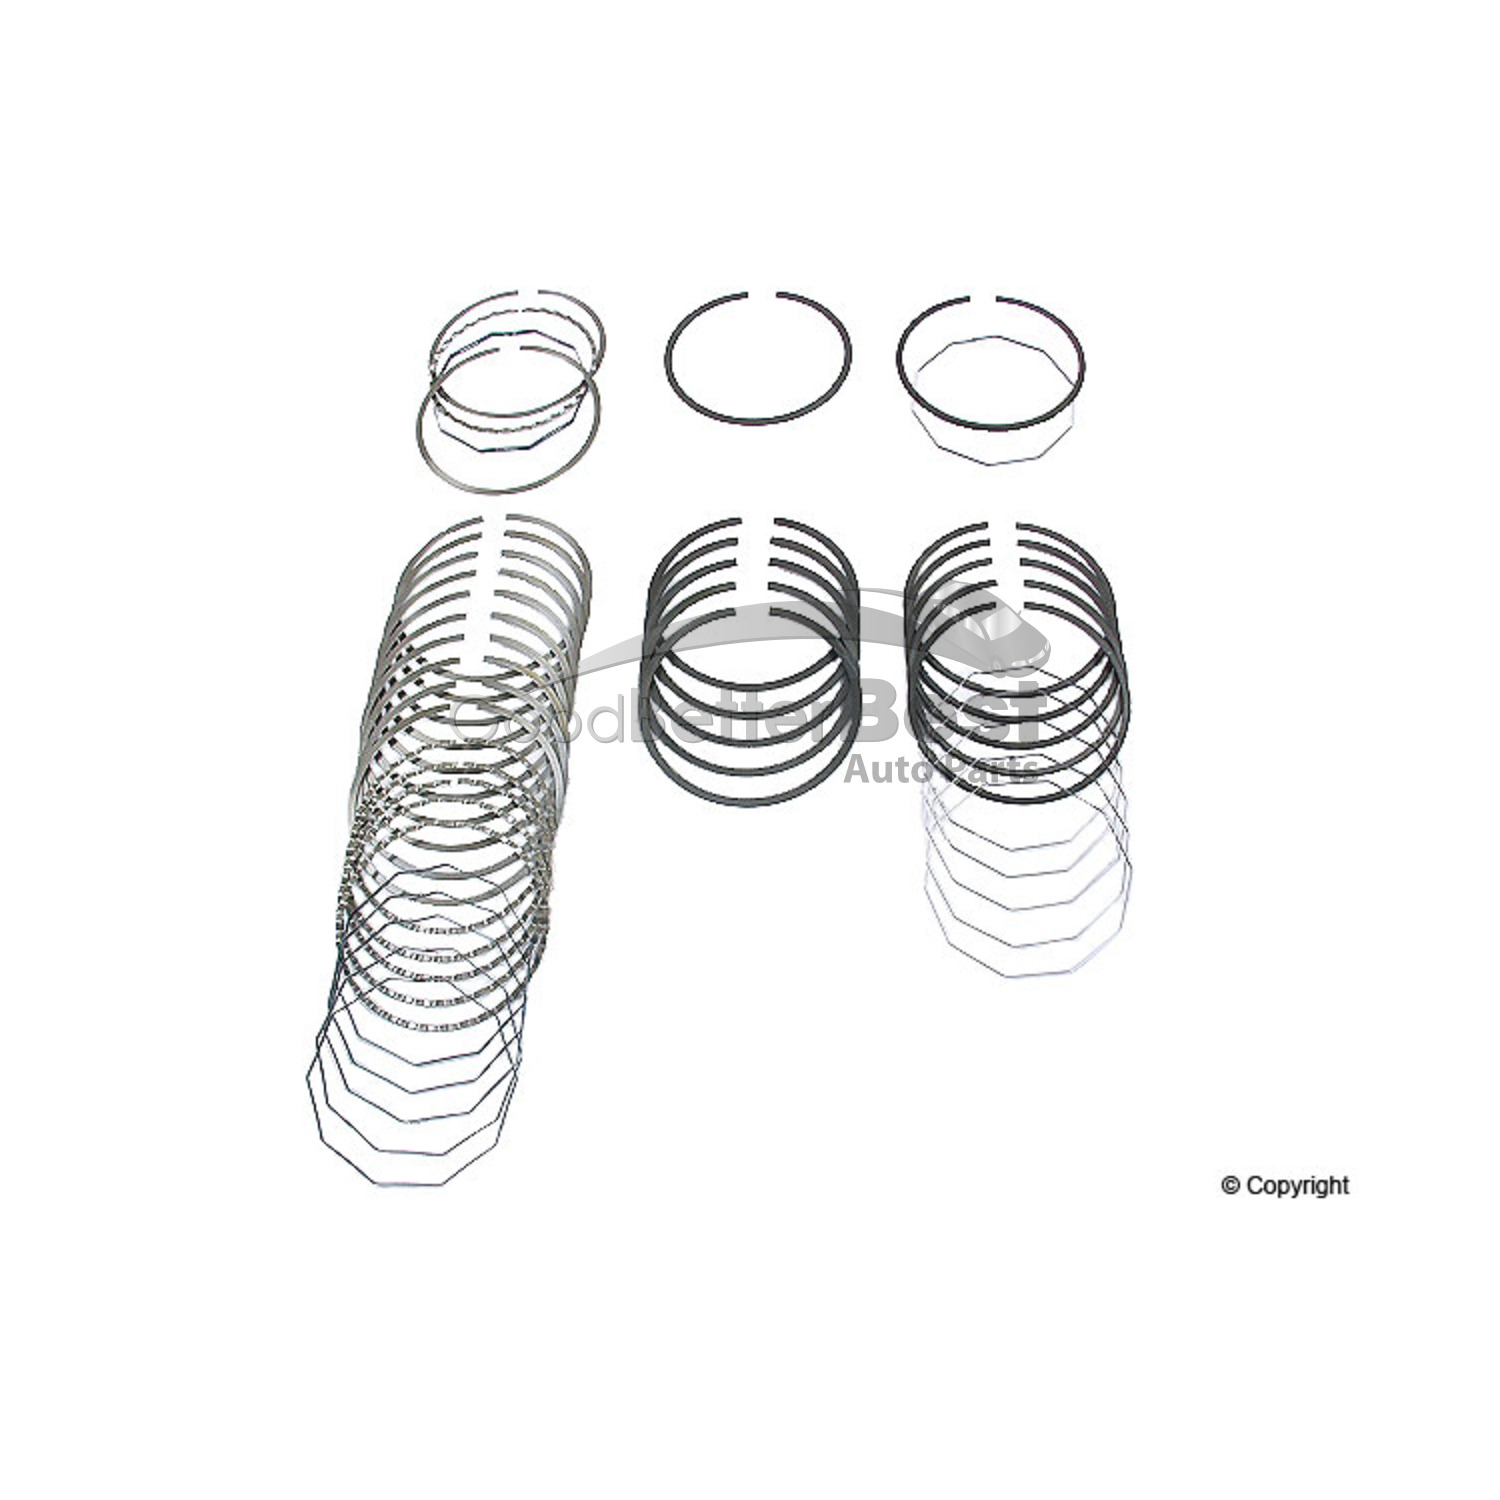 New Deves Engine Piston Ring Set Std Bmw 535i 635csi